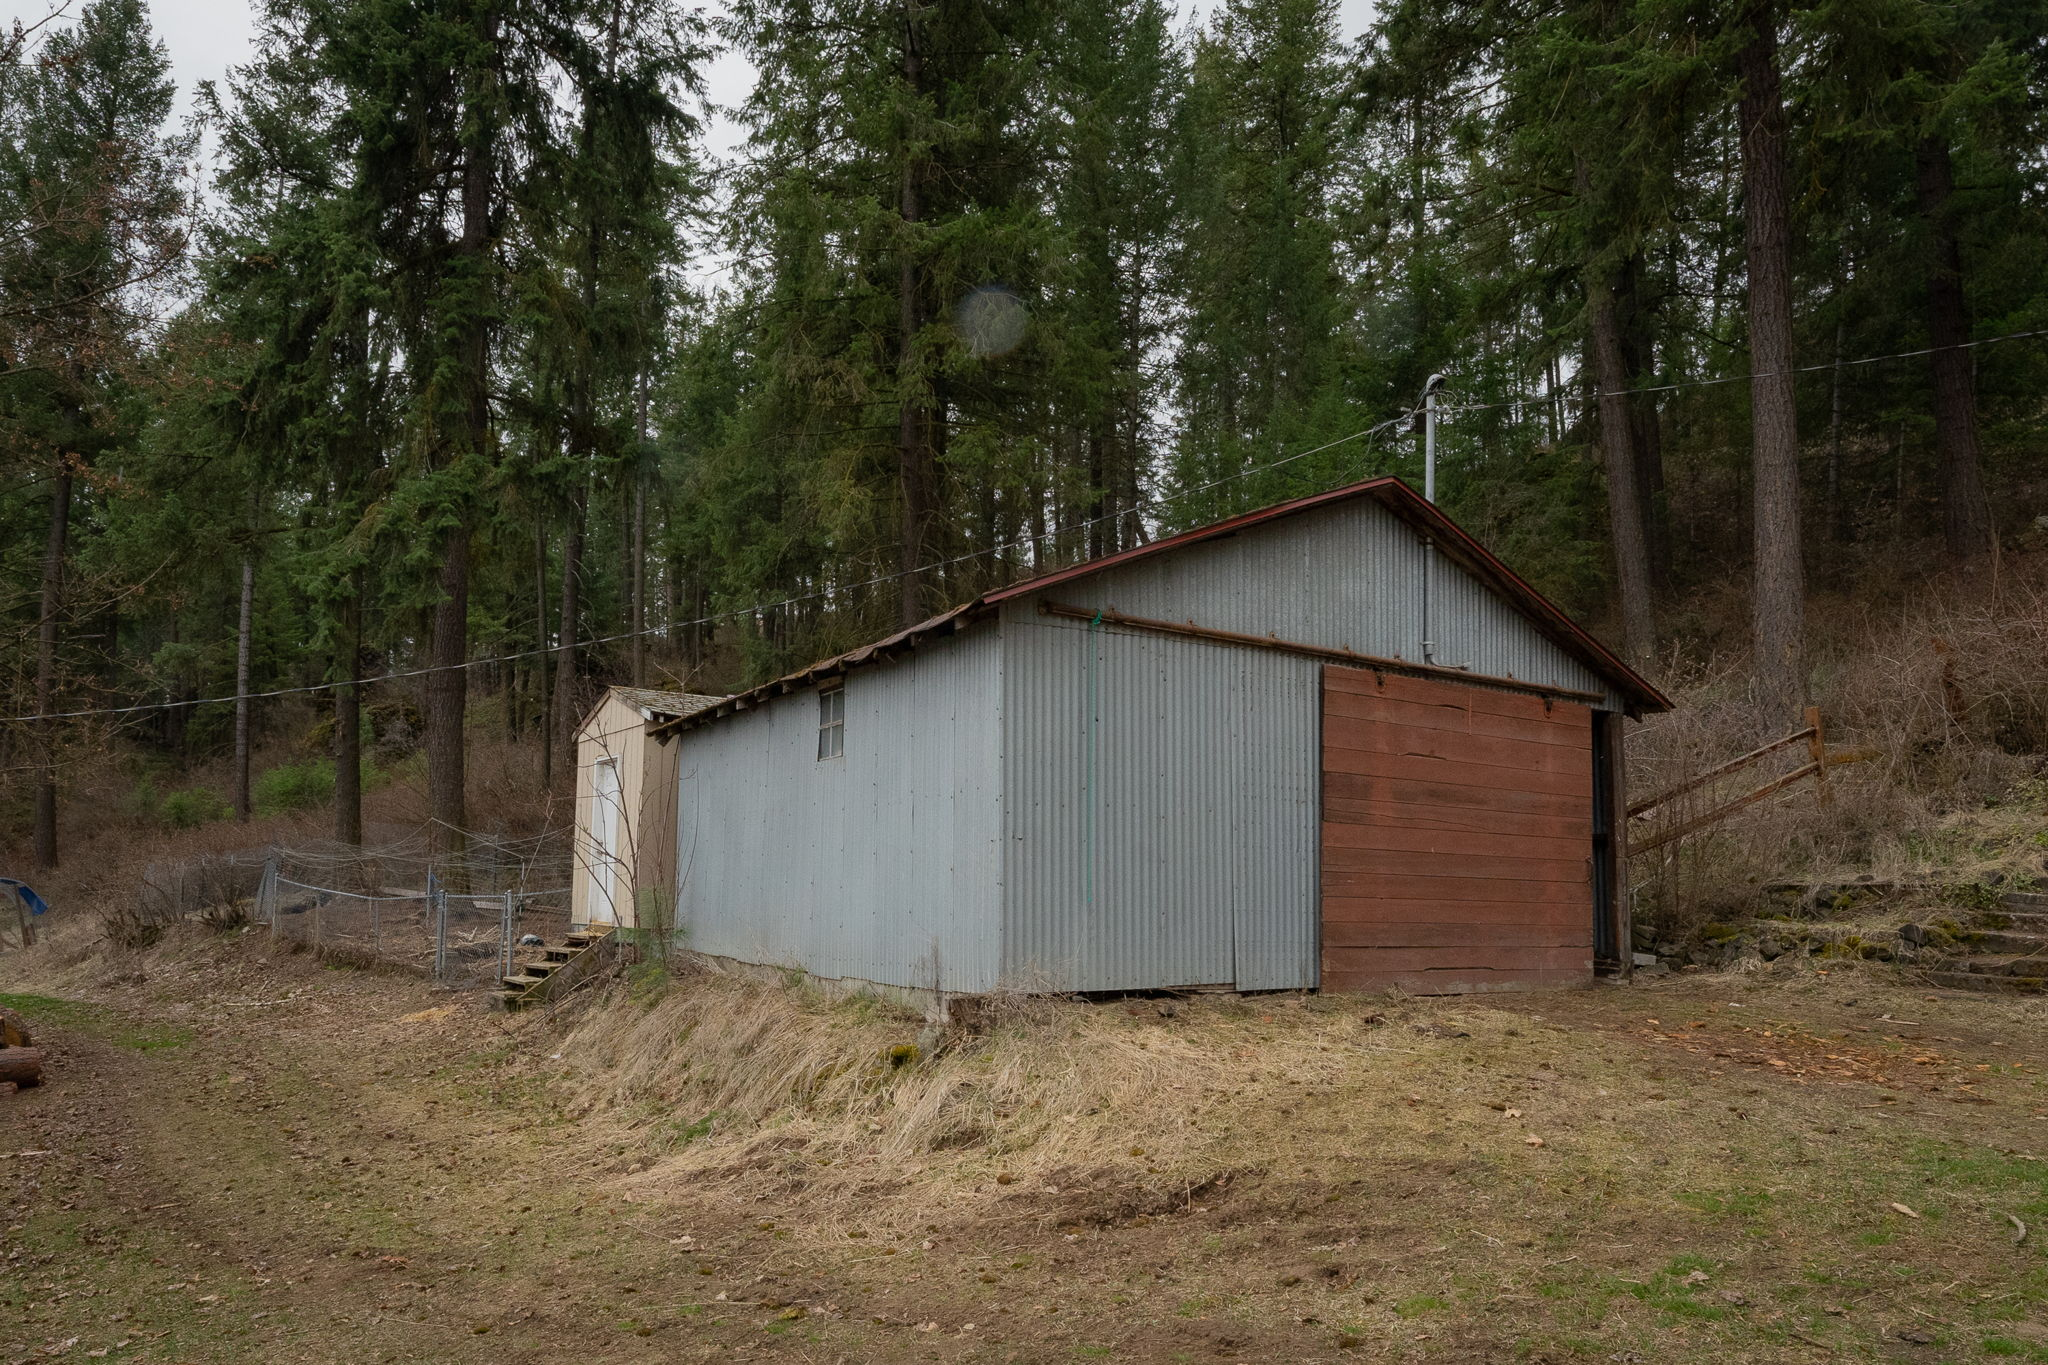 Detached Garage Area and storage building.  Works well for Truck parking.